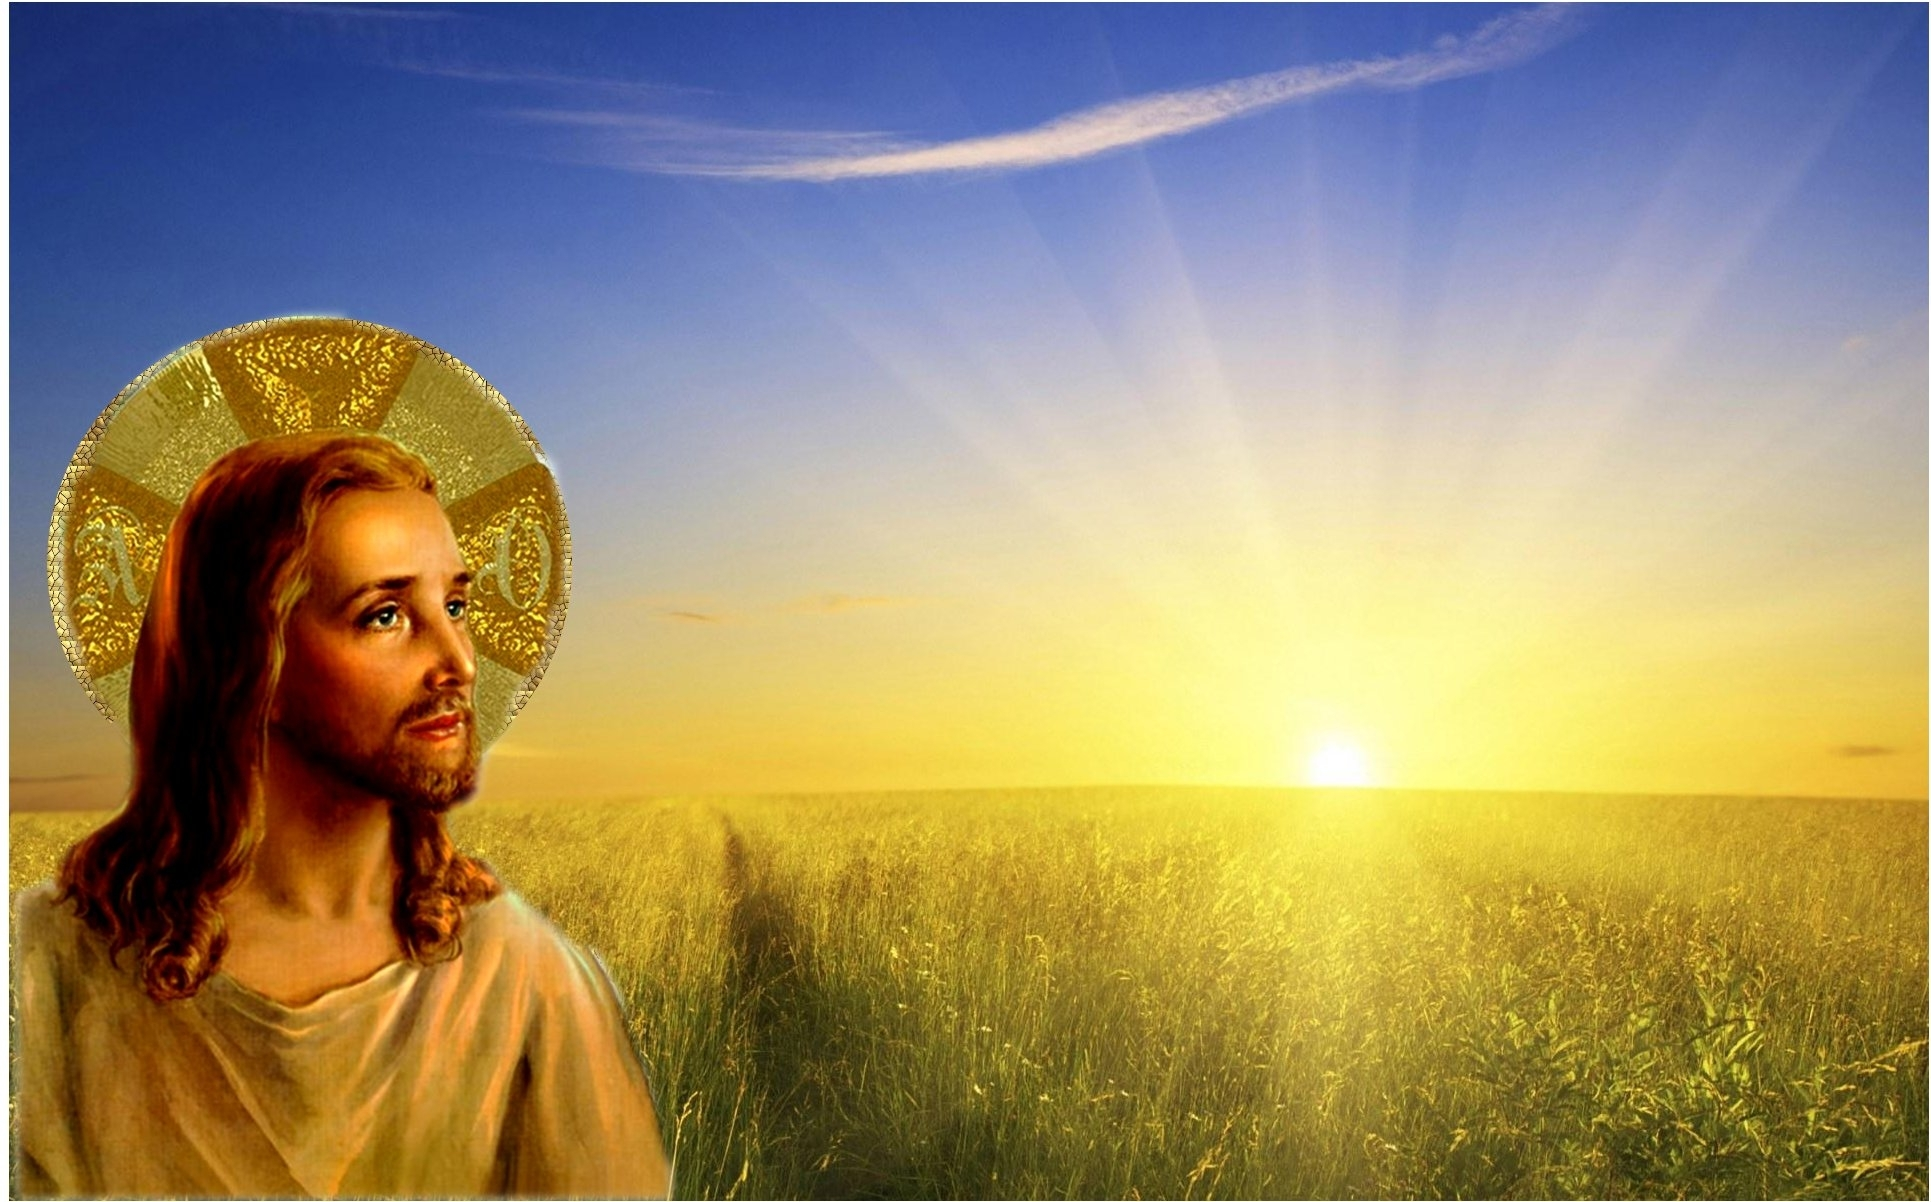 10 Latest Jesus Christ Wallpaper Backgrounds Pictures FULL HD 1920×1080 For PC Background